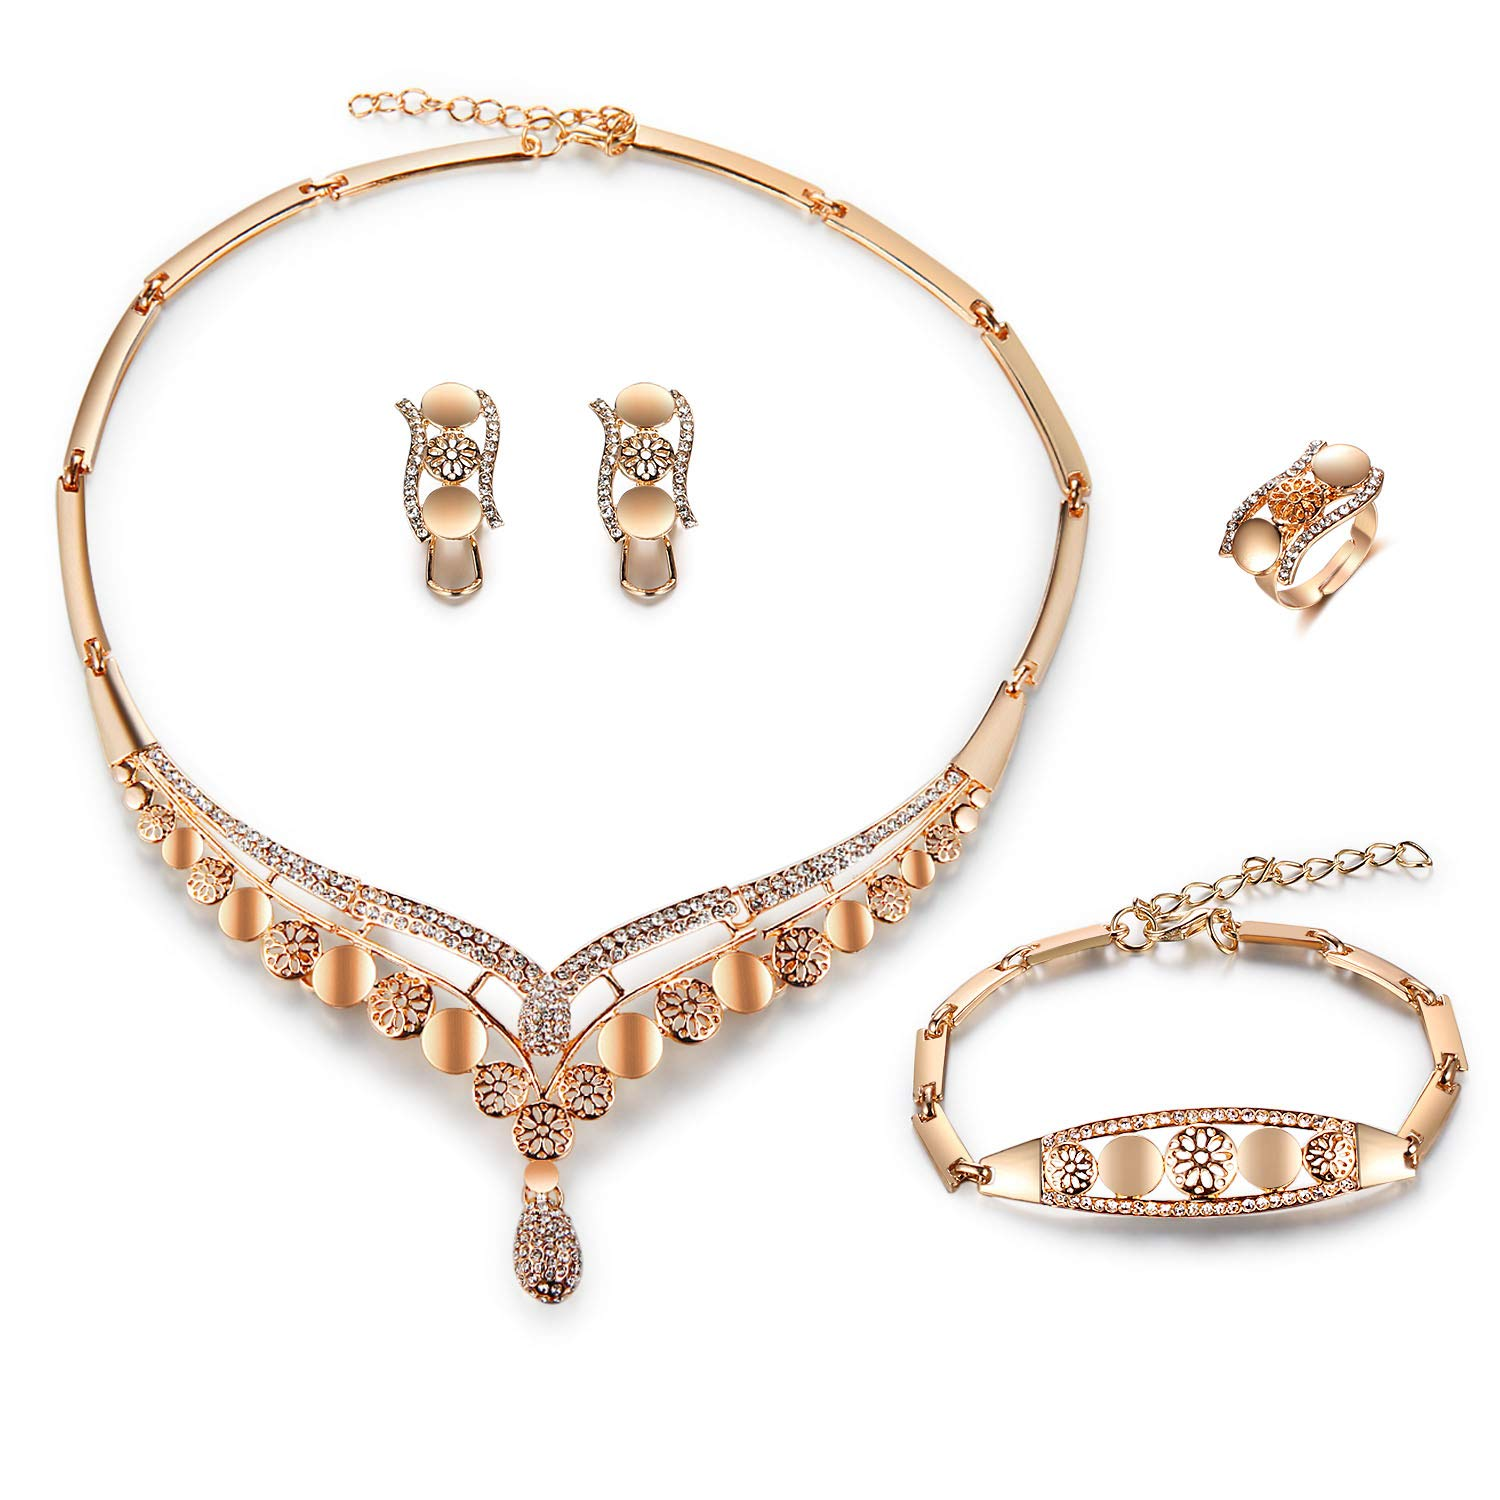 7080e00819ebd FAUOI Womens Luxury Africa Dubai 18k Gold Plated Jewelry Sets Wedding  Rhinestone Crystal Bib Statement Necklace Earrings Set for Brides Party Prom